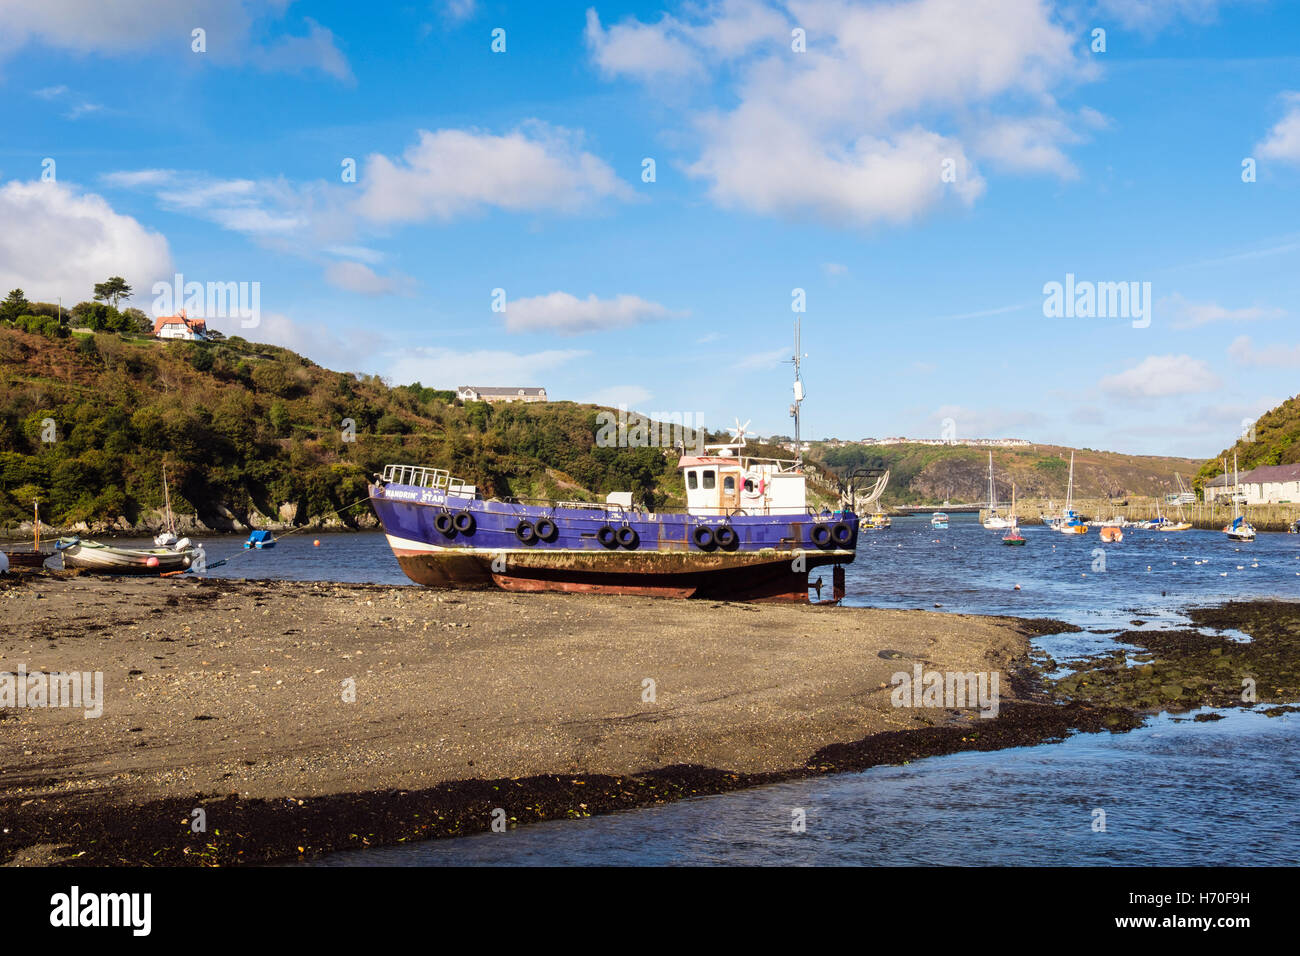 Old fishing boat beached in port on Afon Gwaun River estuary. Lower Fishguard (Abergwaun), Pembrokeshire, Wales, - Stock Image